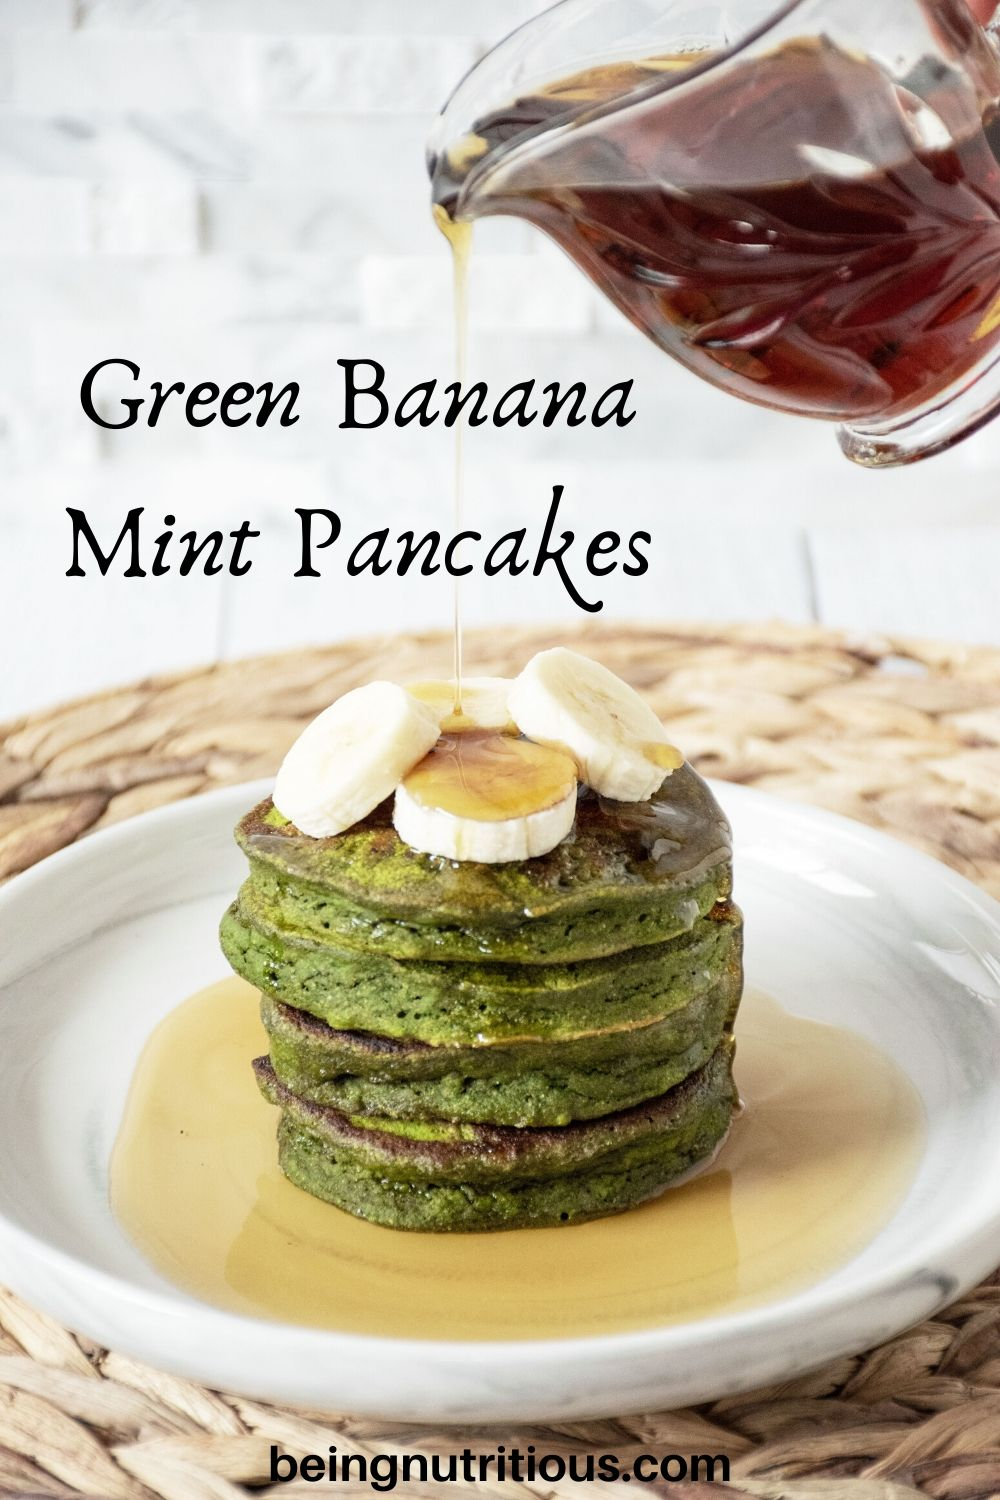 Banana Mint Pancakes on a plate, with banana slices on top, being drizzled with syrup